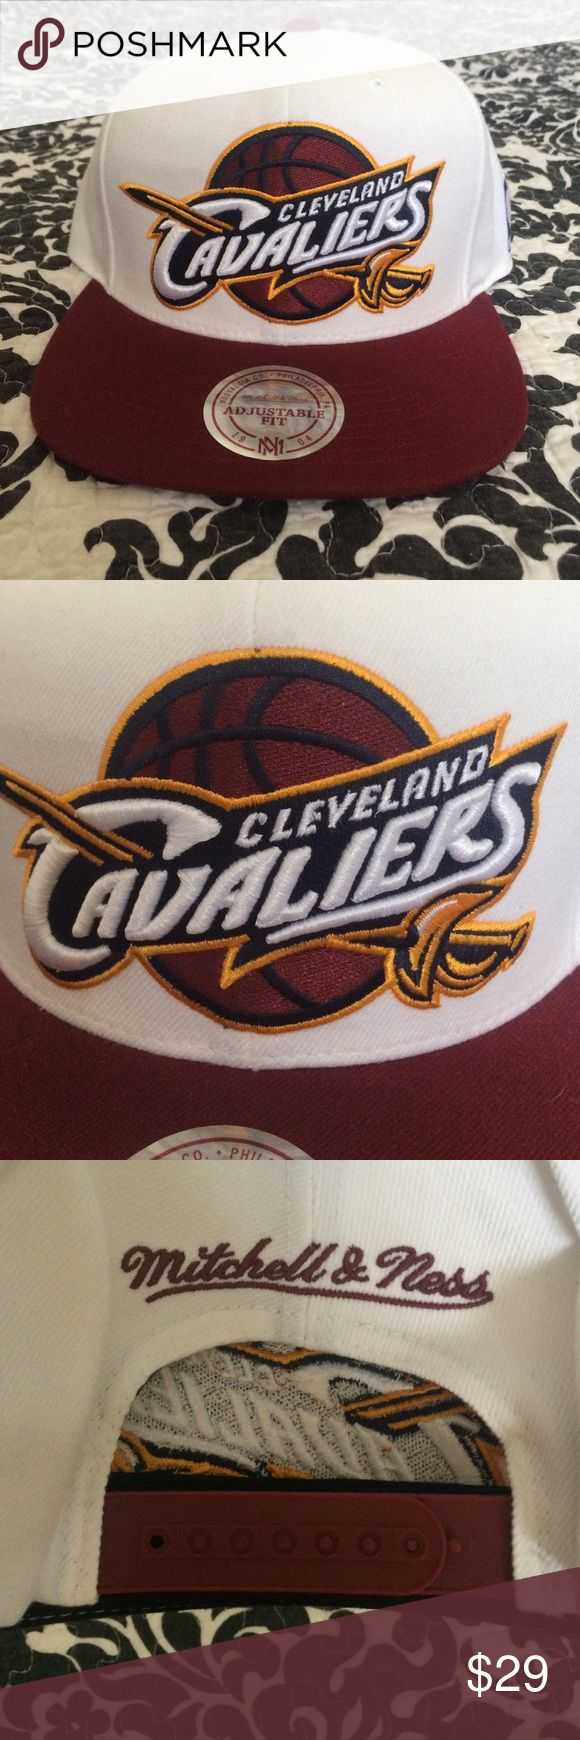 Cleveland Cavaliers SnapBack This Cleveland Cavaliers New Era NBA Cavs HM 9FIFTY Snapback Cap features an embroidered Cleveland Cavaliers logo at front, a stitched New Era® flag at wearer's left side and a snapback closure for an adjustable fit. Interior includes branded taping and a moisture absorbing sweatband.  Style:  20684621 Color: Navy Material: Made of 100% Polyester, Woven Departments:  Snapback,Adjustable,9FIFTY Crown:  High  Closure:  Snap  Fit:  Structured  Bill Type:  Normal…